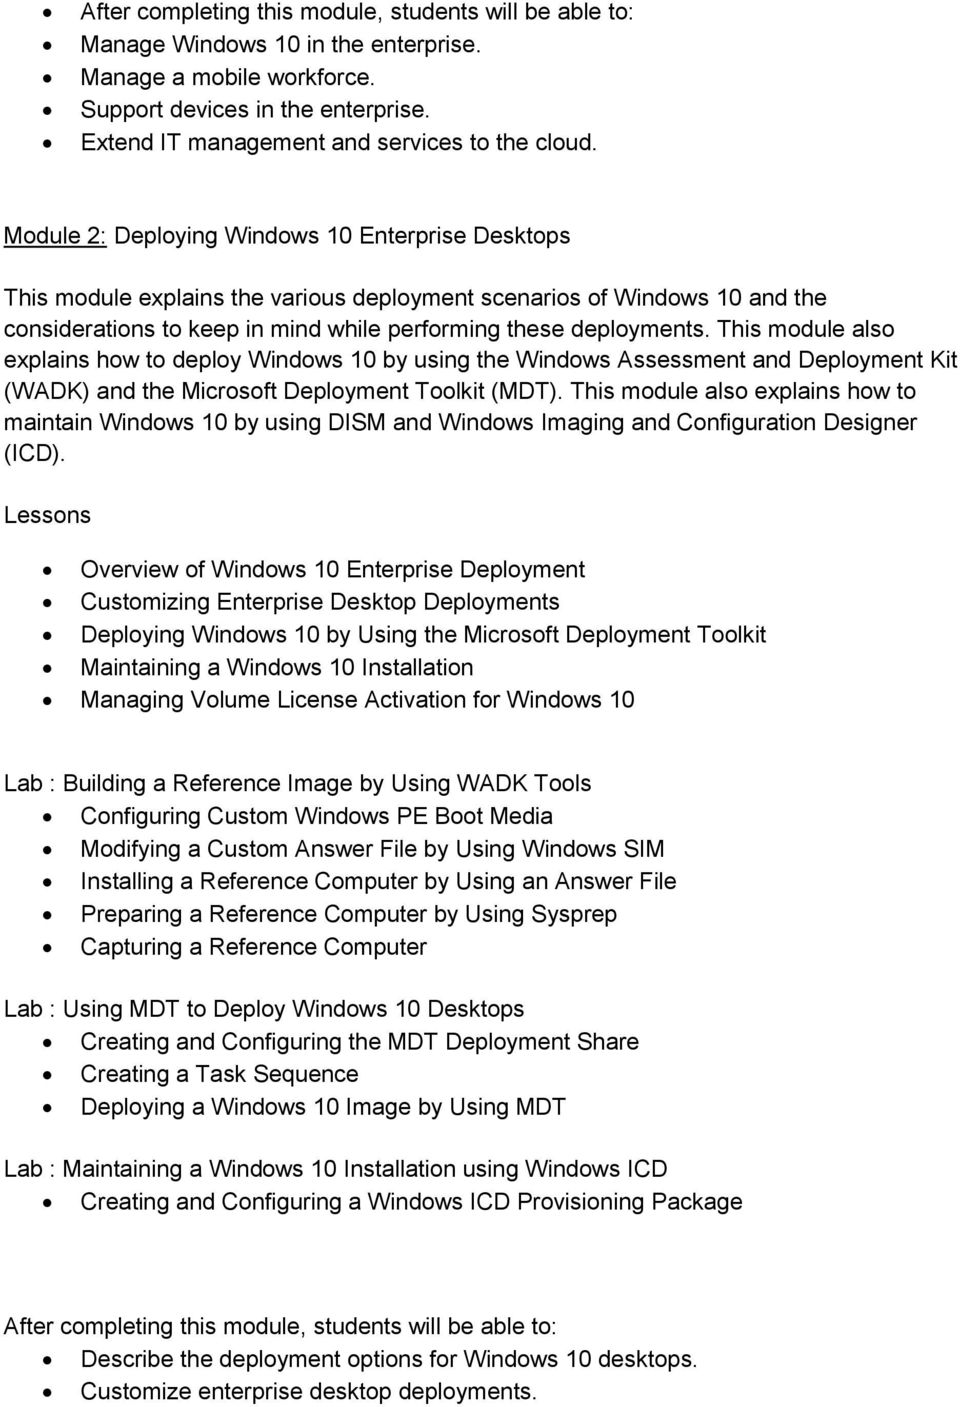 Course : Deploying and Managing Windows 10 Using Enterprise